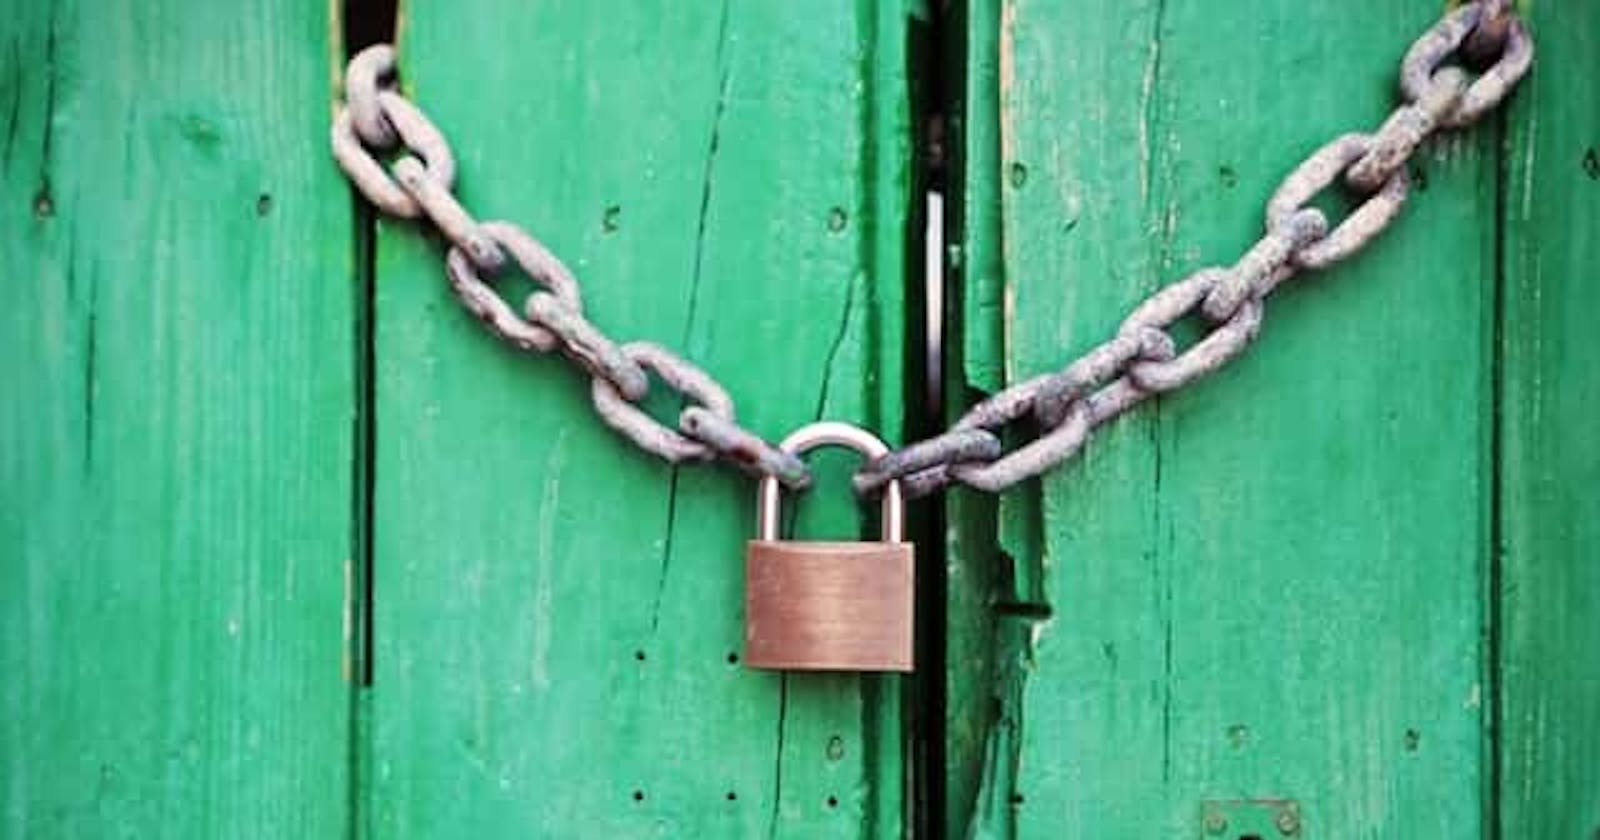 Rails Security Best Practices - Check For Unauthorized Access